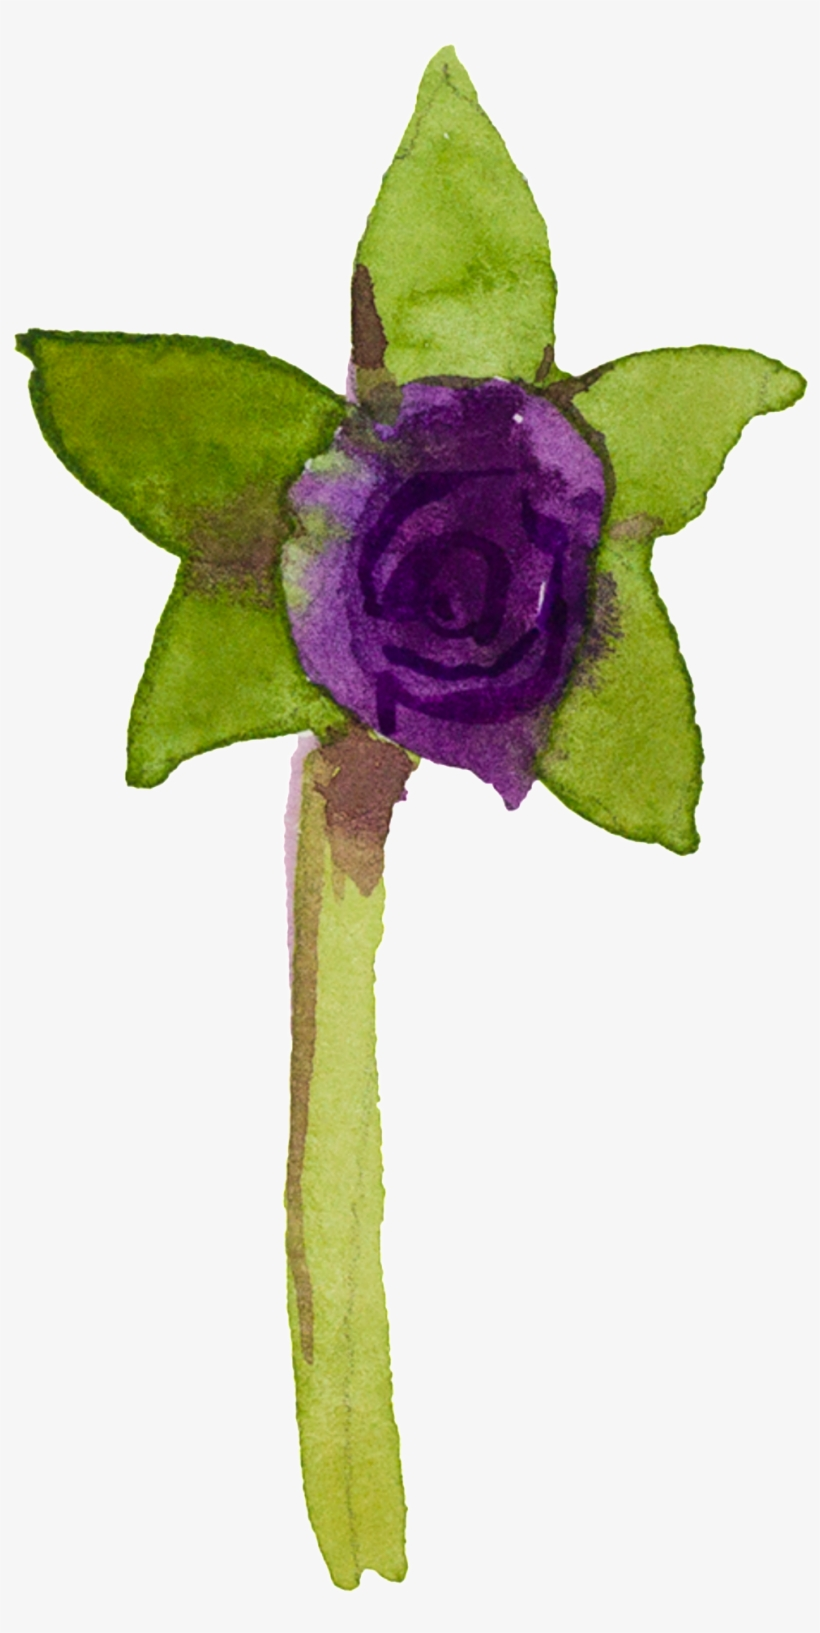 Purple Hand Painted Small Flower Watercolor Transparent - Watercolor Painting, transparent png #43904